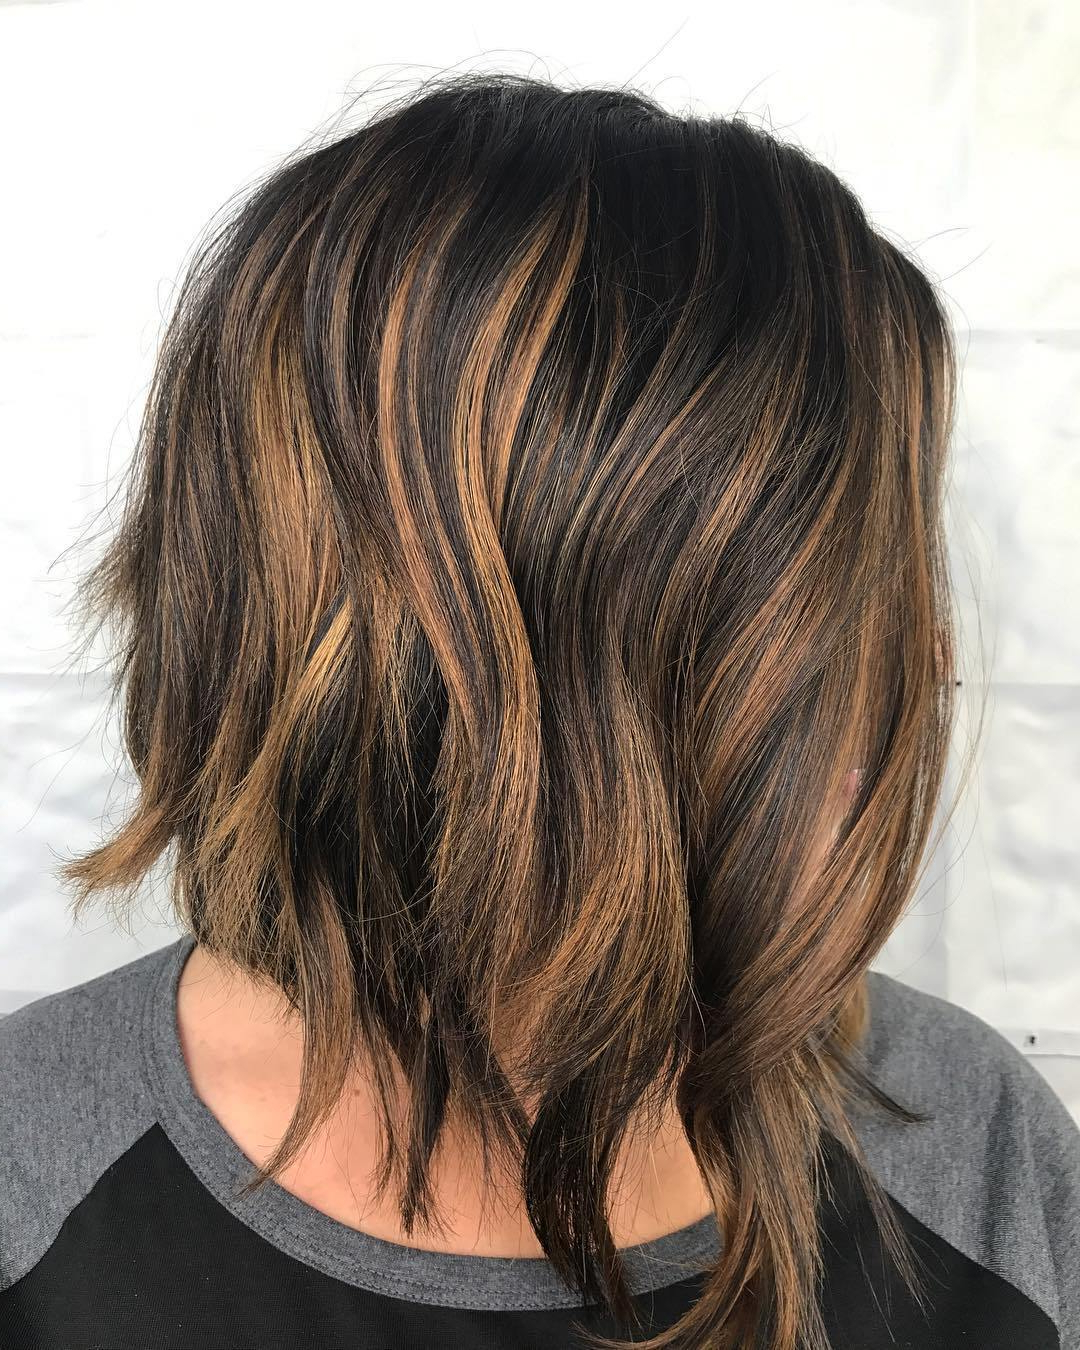 50 Hairstyles For Thick Wavy Hair You Will Adore – Hair Pertaining To Popular Razored Shag Haircuts For Long Thick Hair (View 7 of 20)